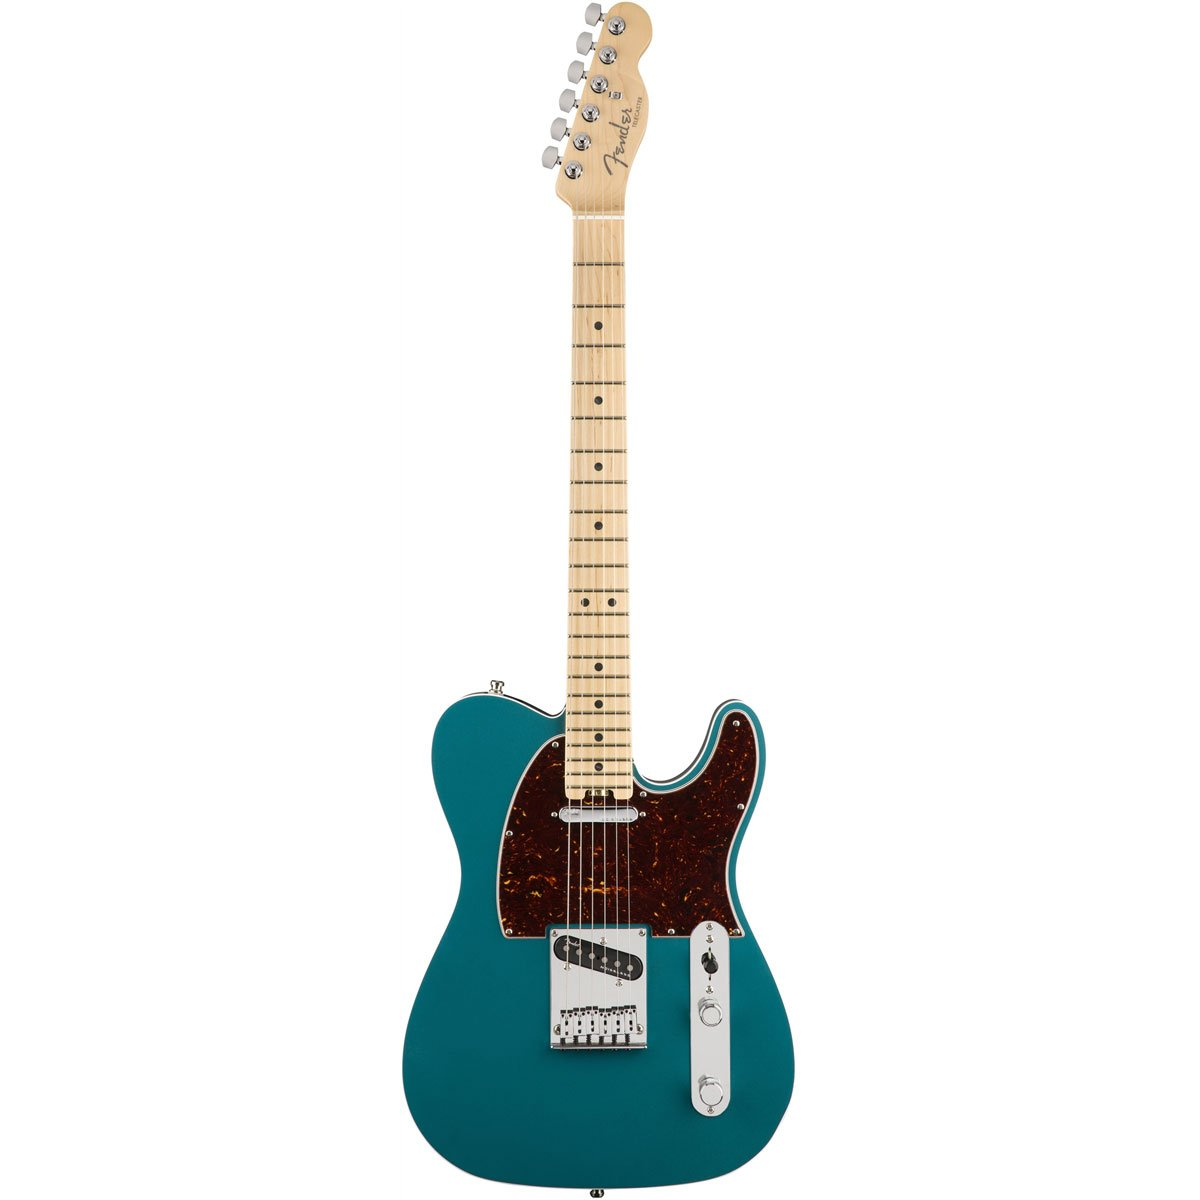 Fender American Elite Telecaster, Ocean Turquoise, Maple | Lucky Fret Music Co.